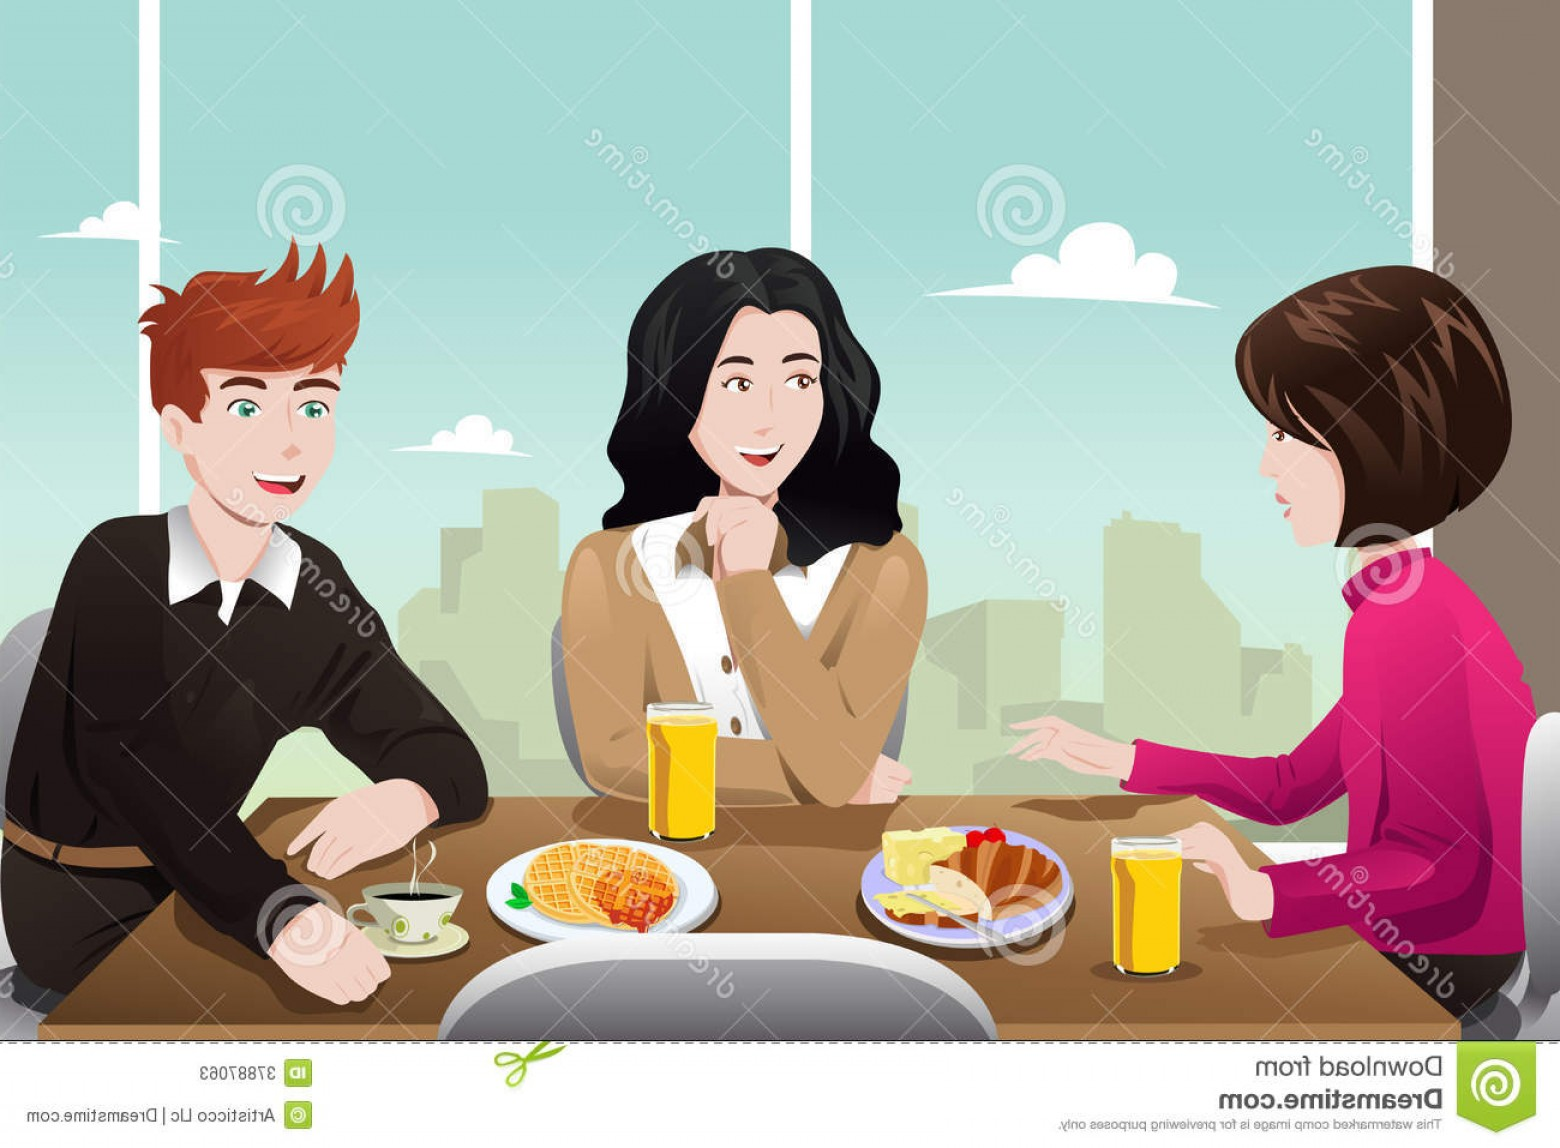 Business Lunch Clip Art Vector: Stock Photos Business People Eating Together Vector Illustration Businesspeople Cafeteria Image